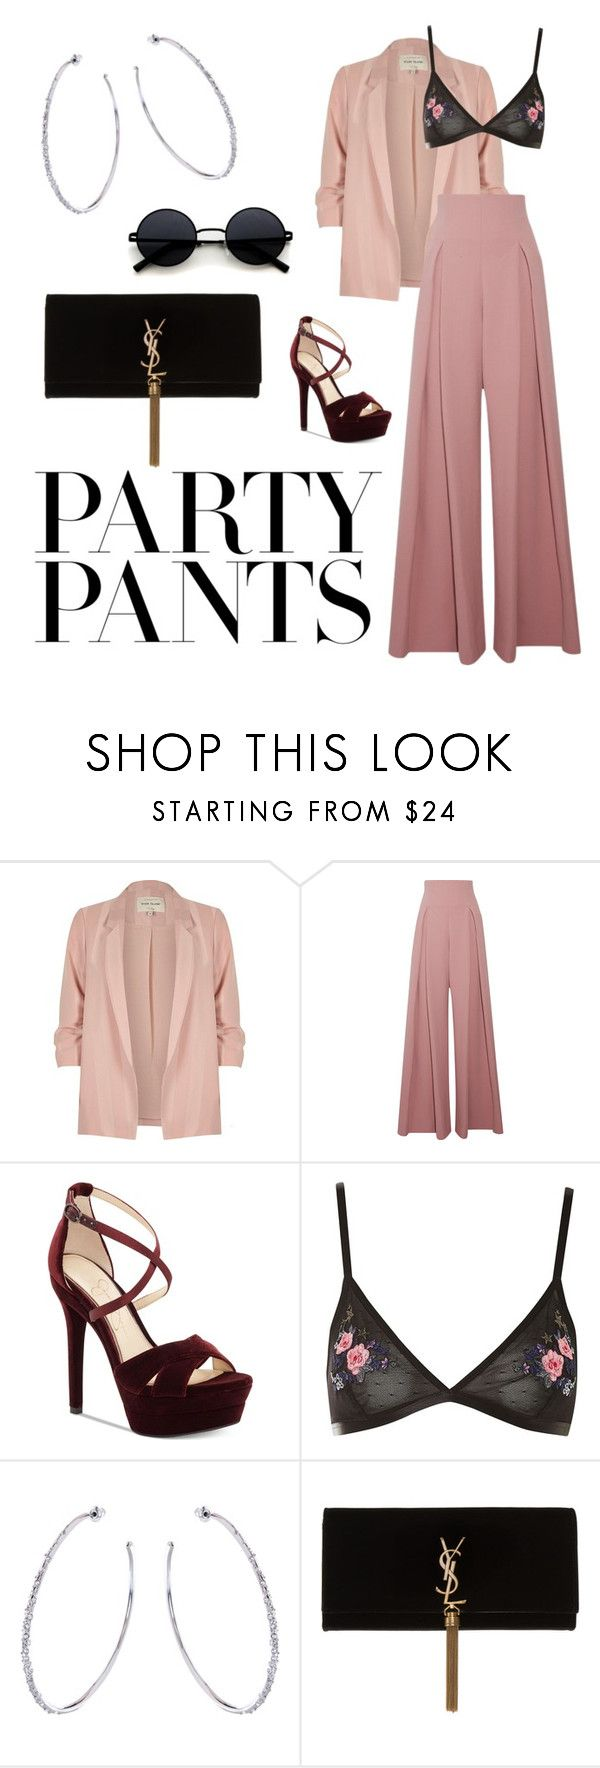 """""""#PolyPresents: Fancy Pants"""" by trinitybrowne ❤ liked on Polyvore featuring River Island, Emilia Wickstead, Jessica Simpson, Topshop, Karen Millen, Yves Saint Laurent, contestentry and polyPresents"""